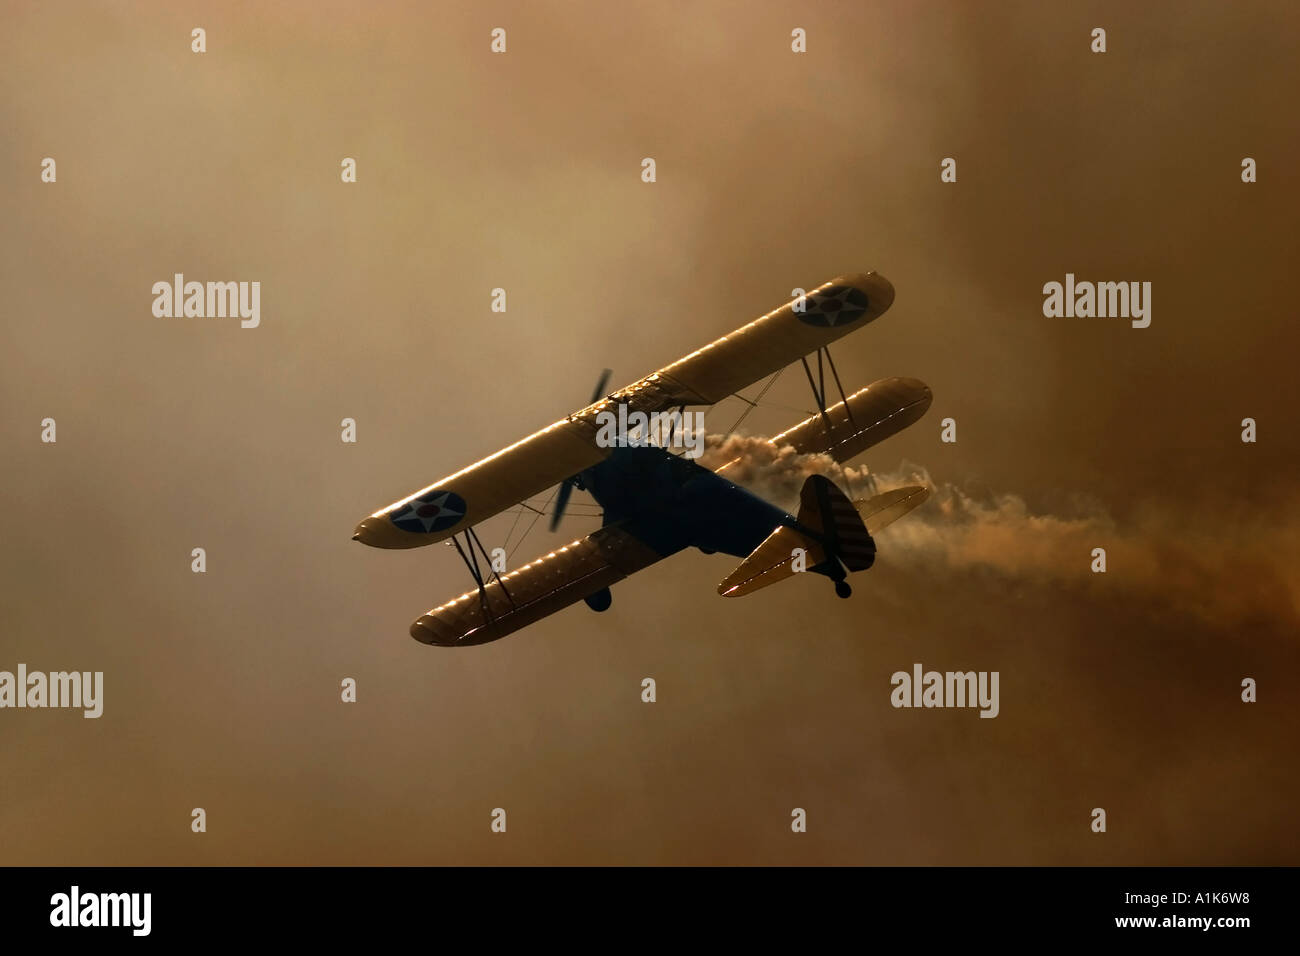 A long Way Home, Bi Plane smoking - Stock Image